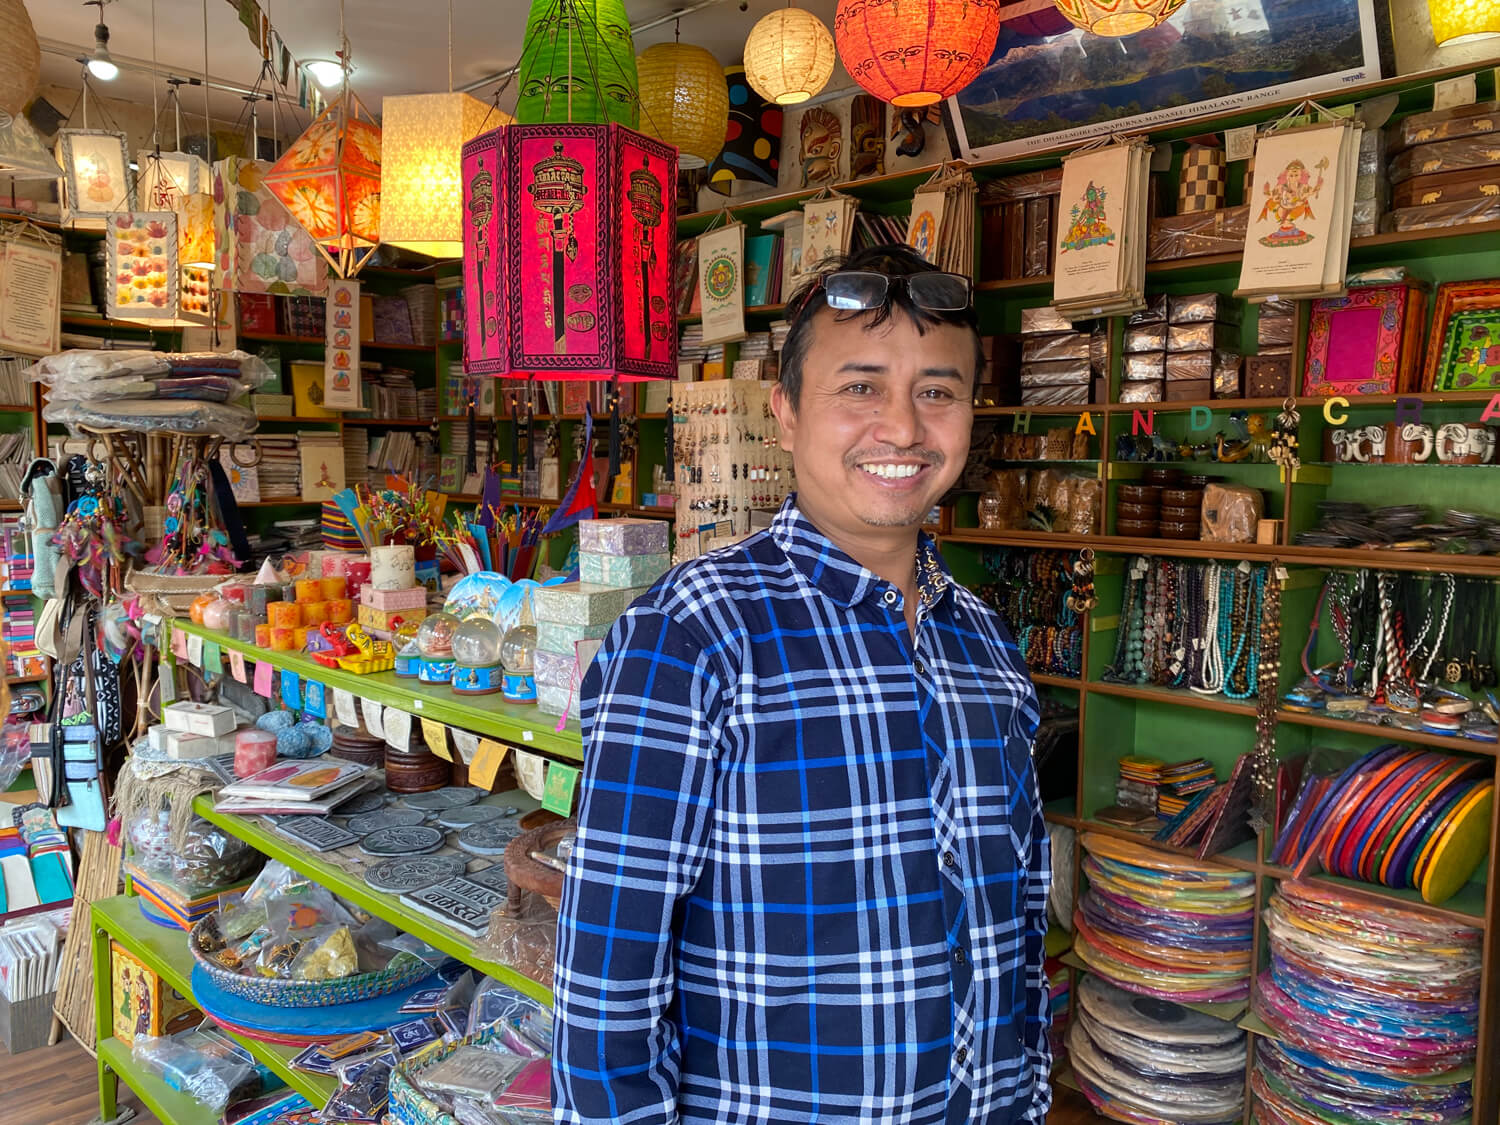 Staying in Nepal to create jobs